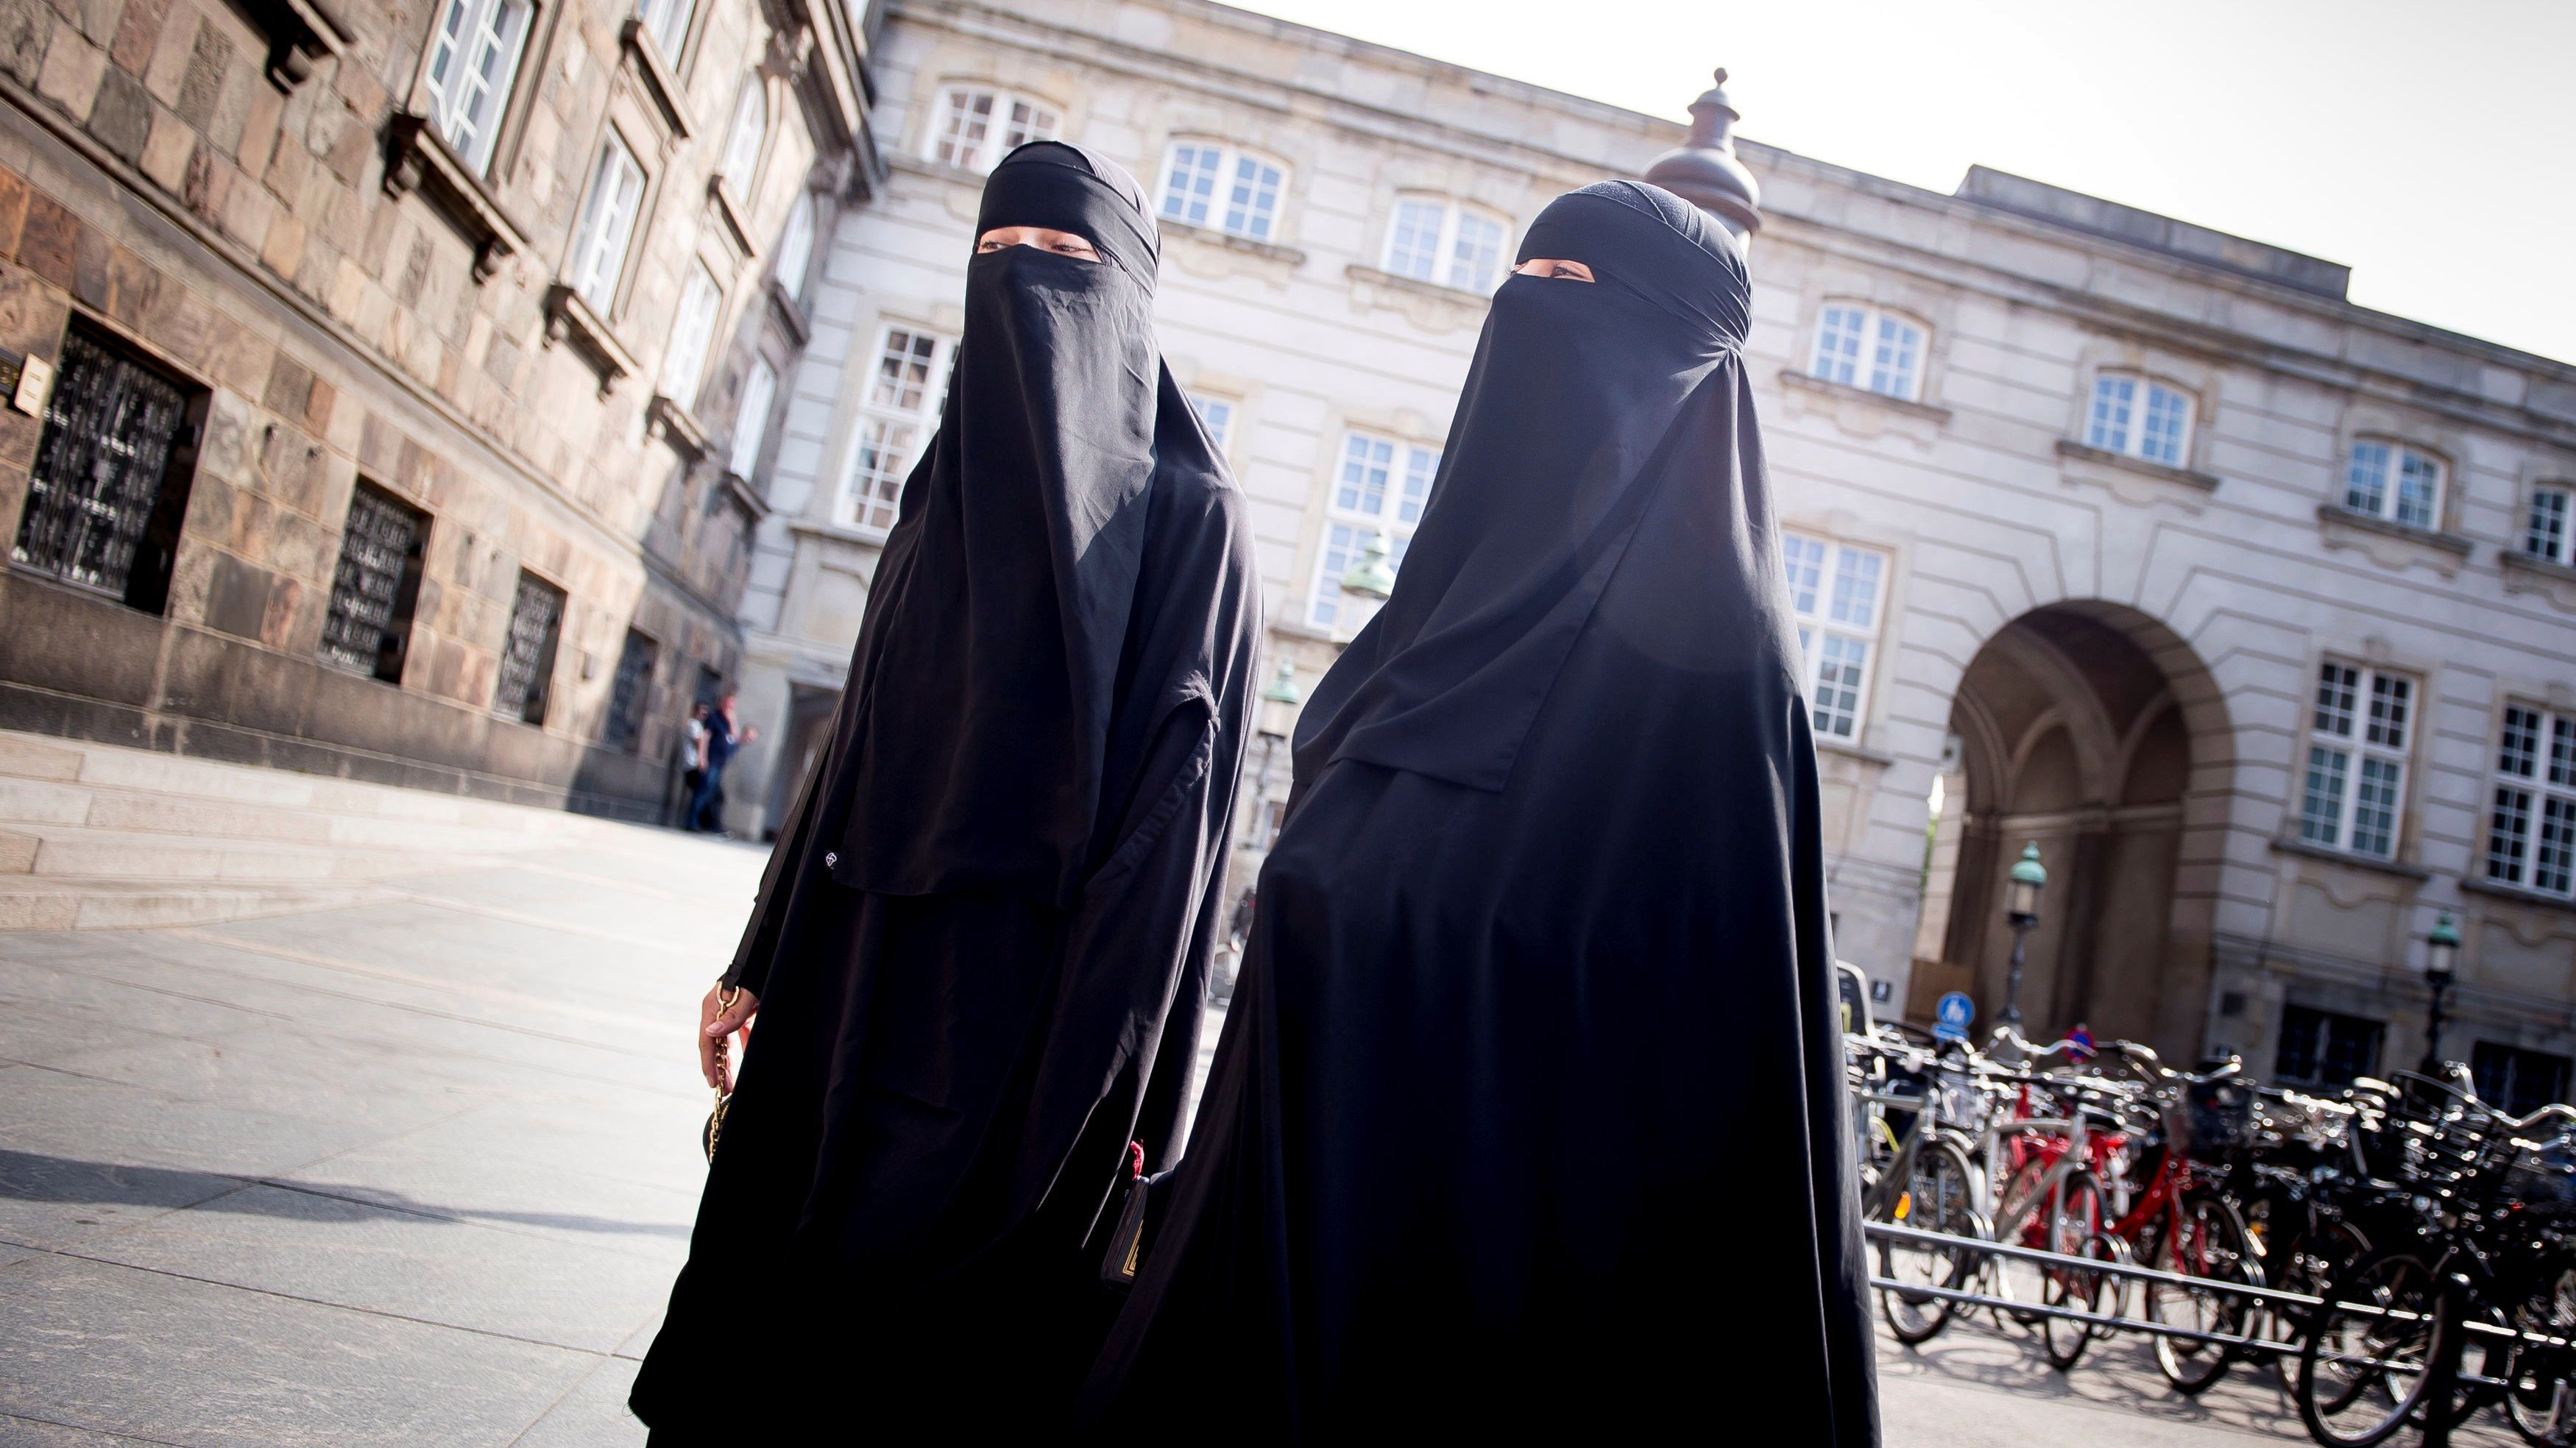 Women in niqab are pictured after the Danish Parliament banned the wearing of face veils in public, at Christiansborg Palace in Copenhagen, Denmark, May 31, 2018.